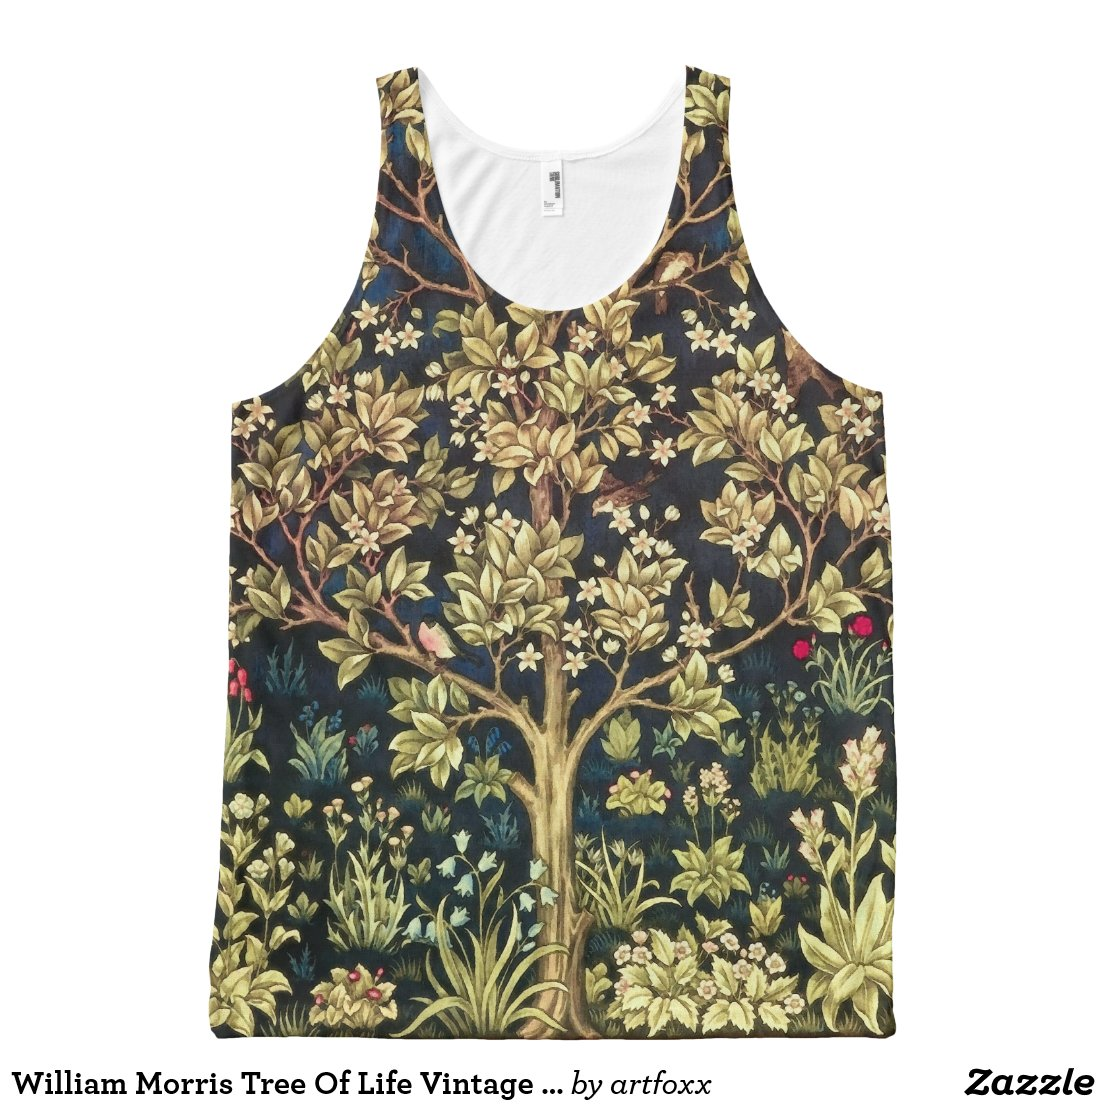 William Morris Tree Of Life Vintage Pre-Raphaelite All-Over-Print Tank Top